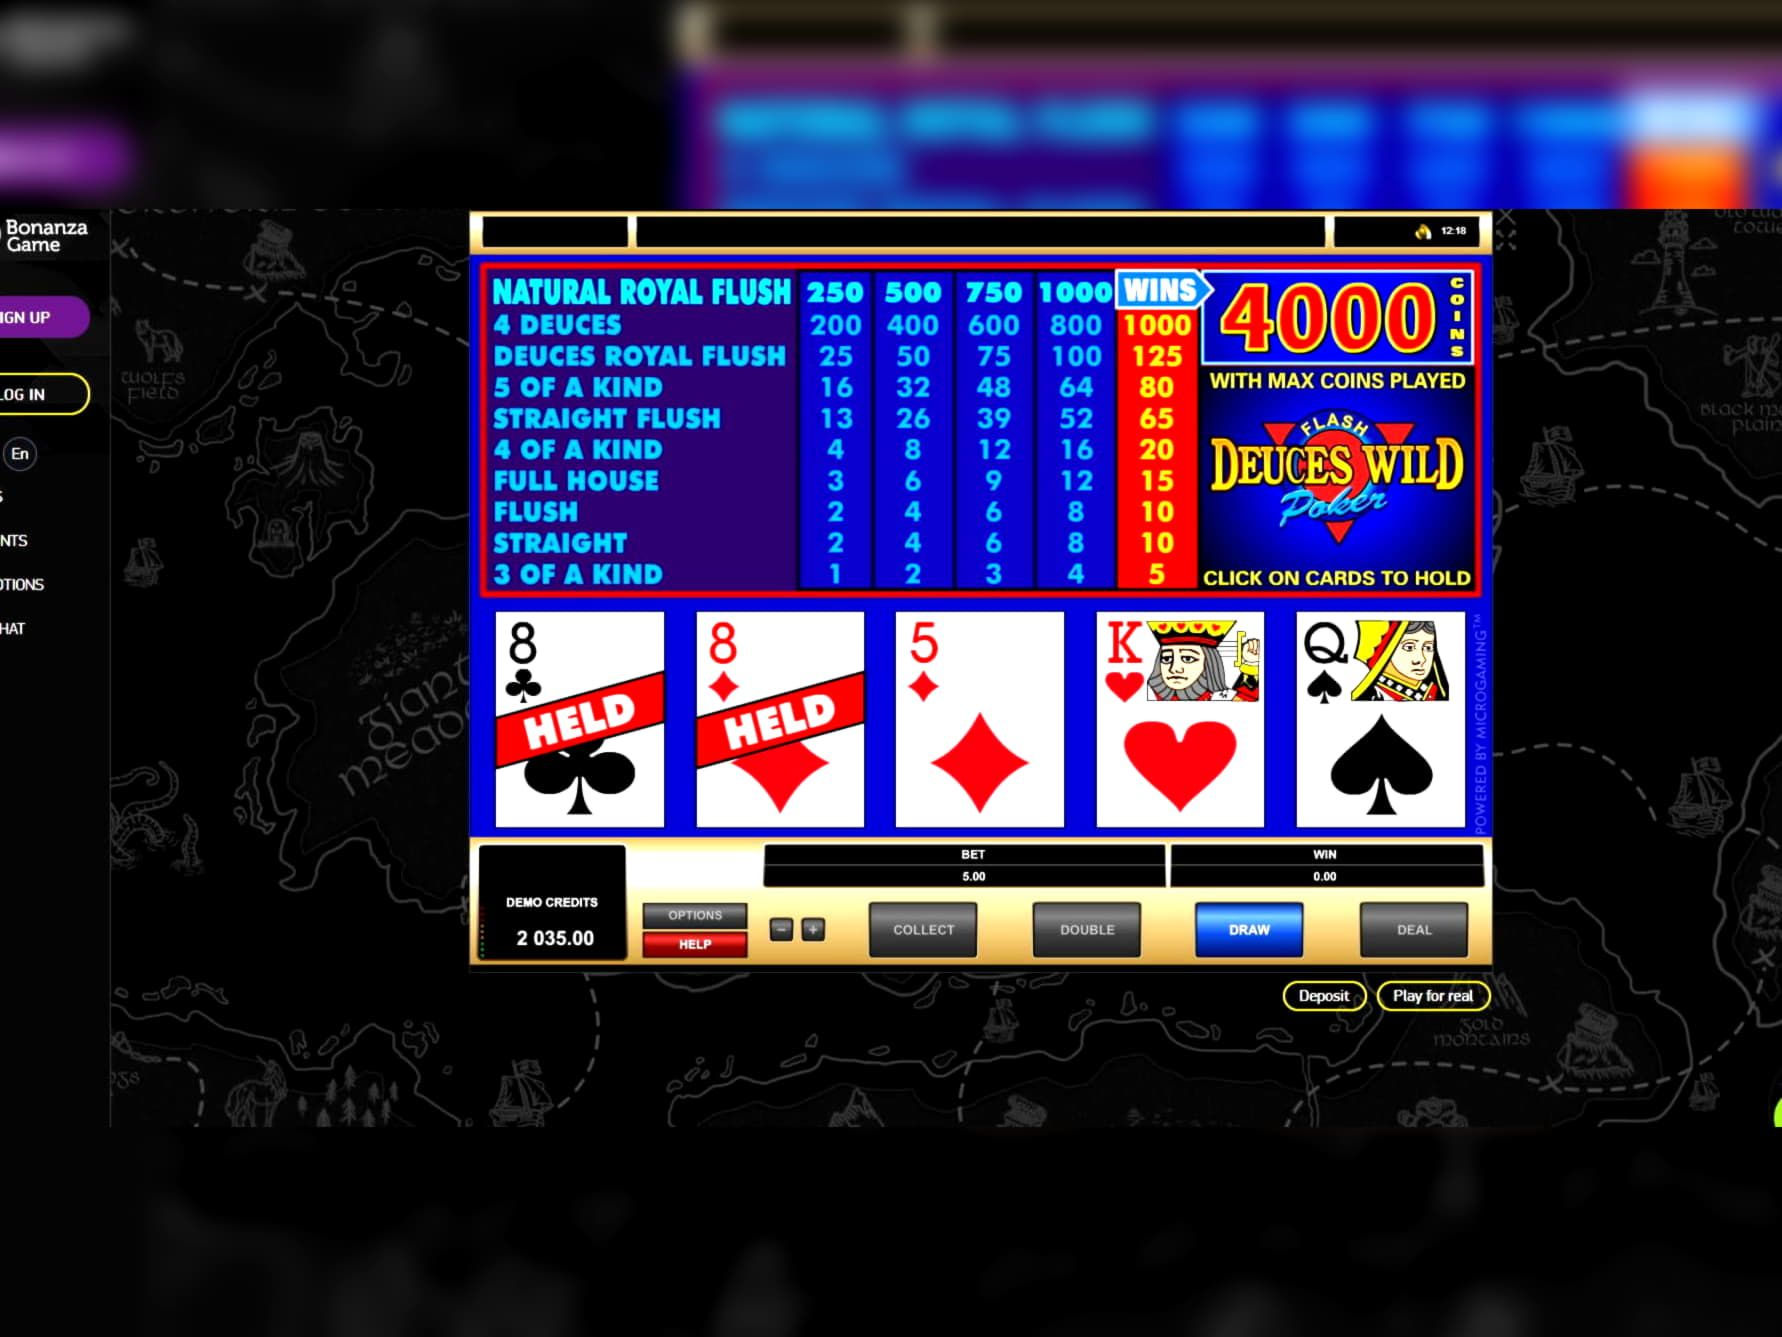 22 Mobile Freeroll Slot Tournament At 888 Casino 30x Wager